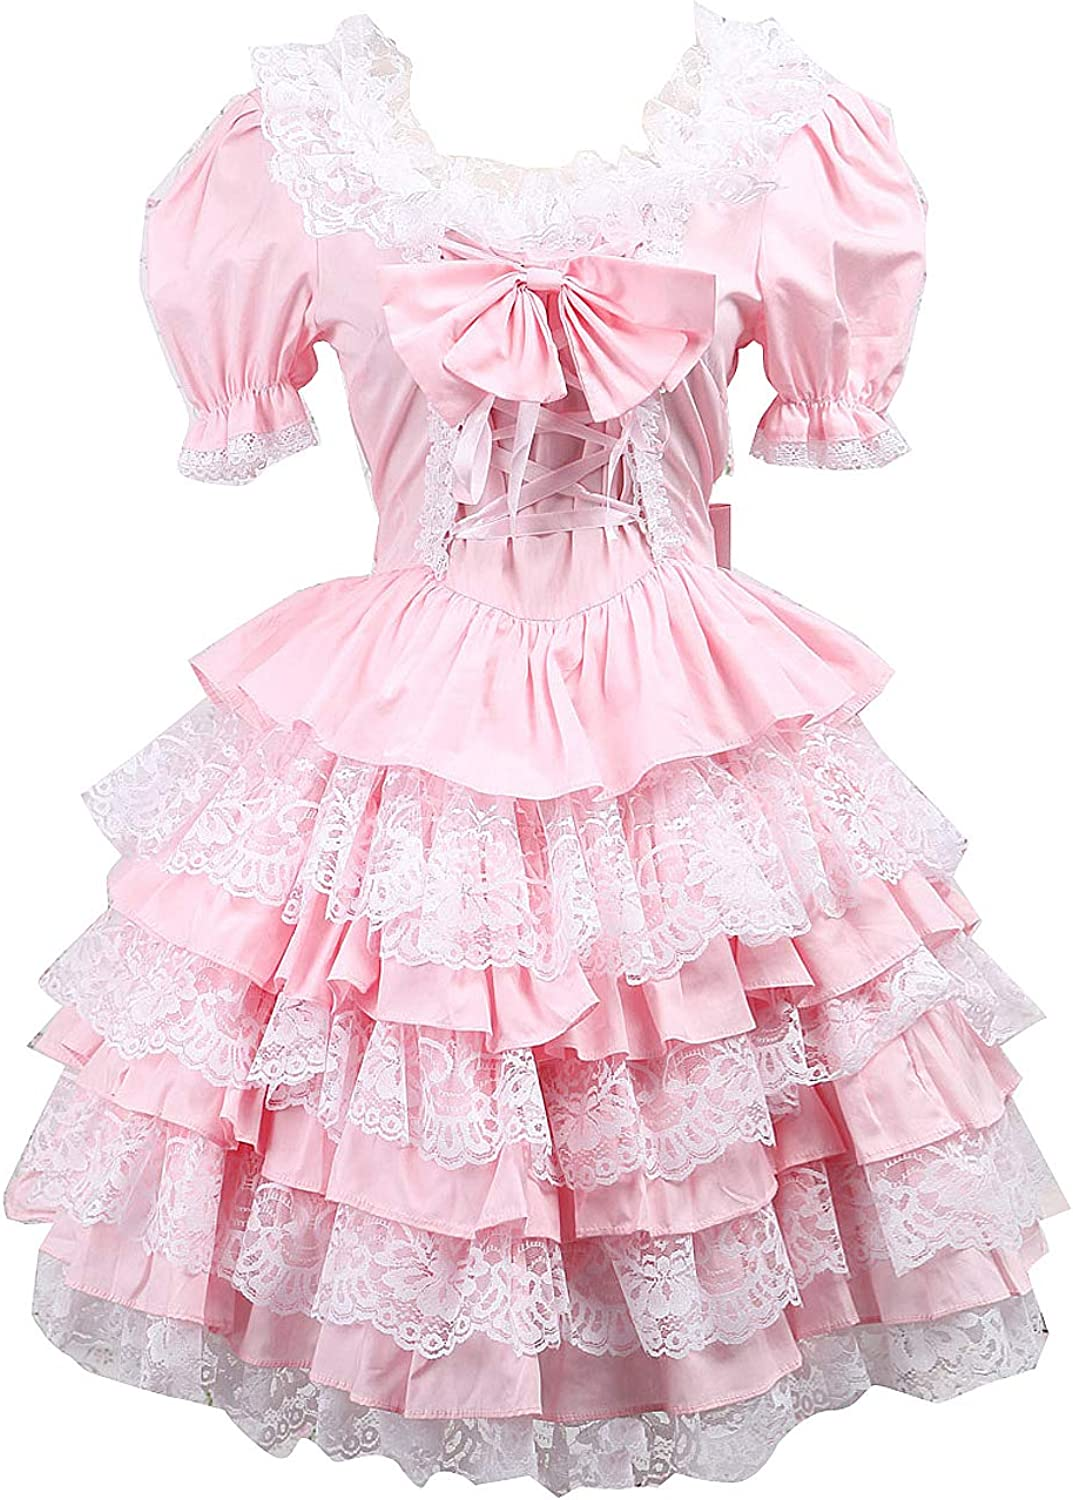 Antaina Pink Cotton Ruffle Lace Bow Puff Victorian Sweet Lolita Cosplay Dress